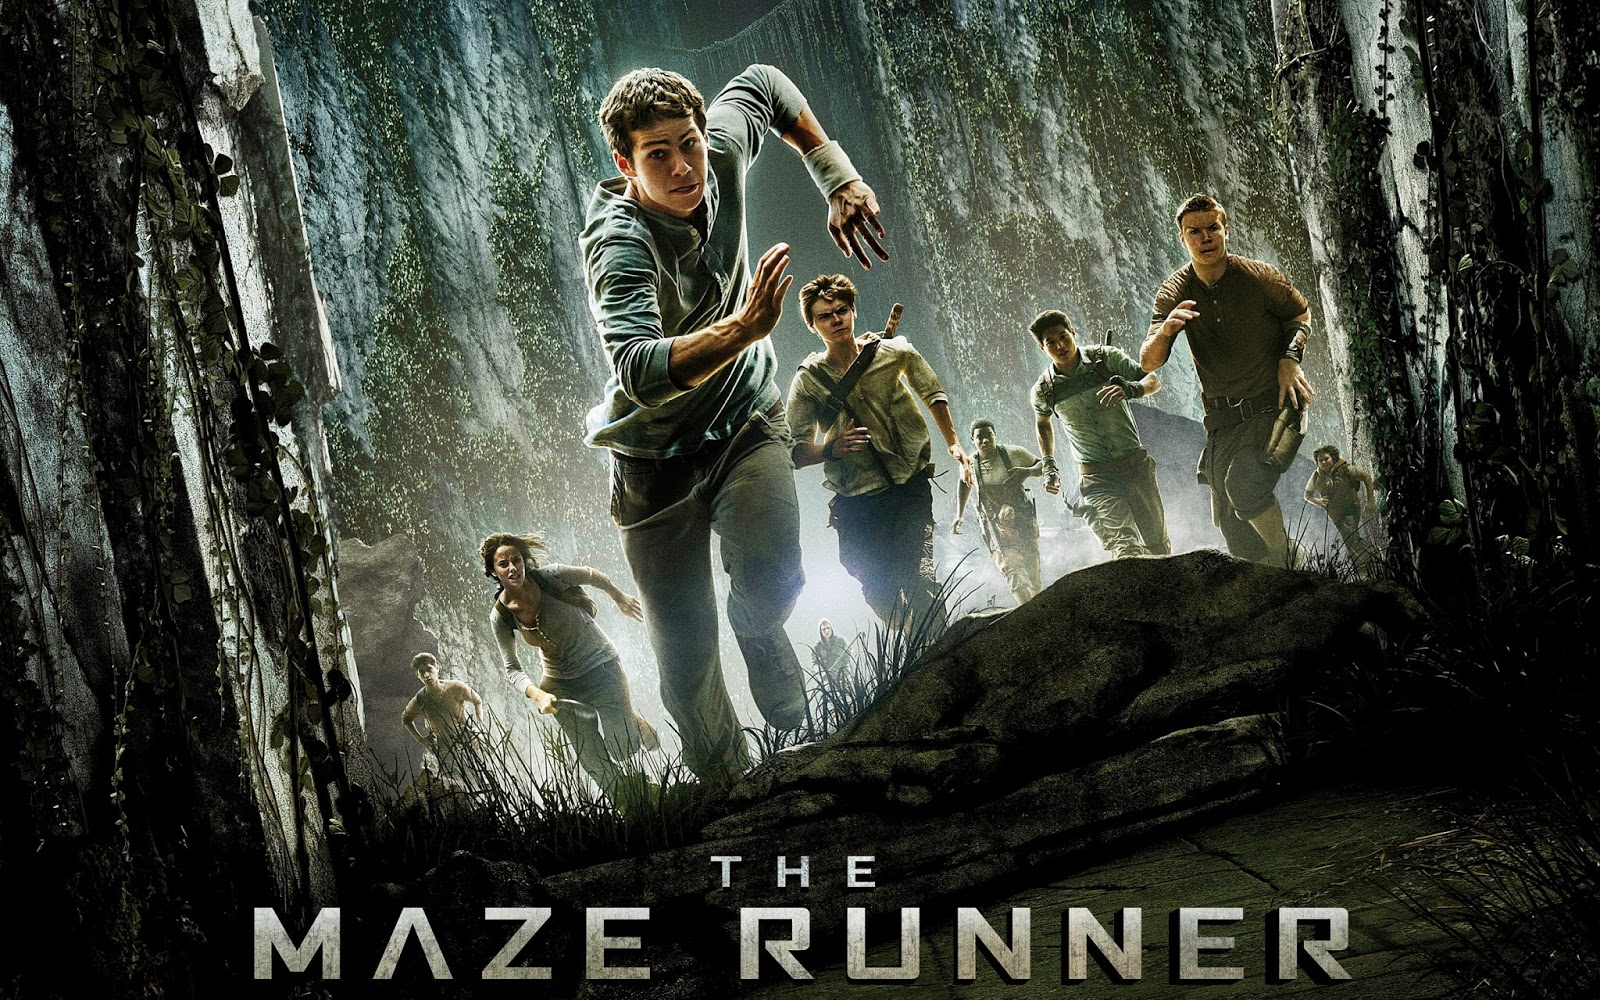 The Maze Runner v1.1.0 APK Mod